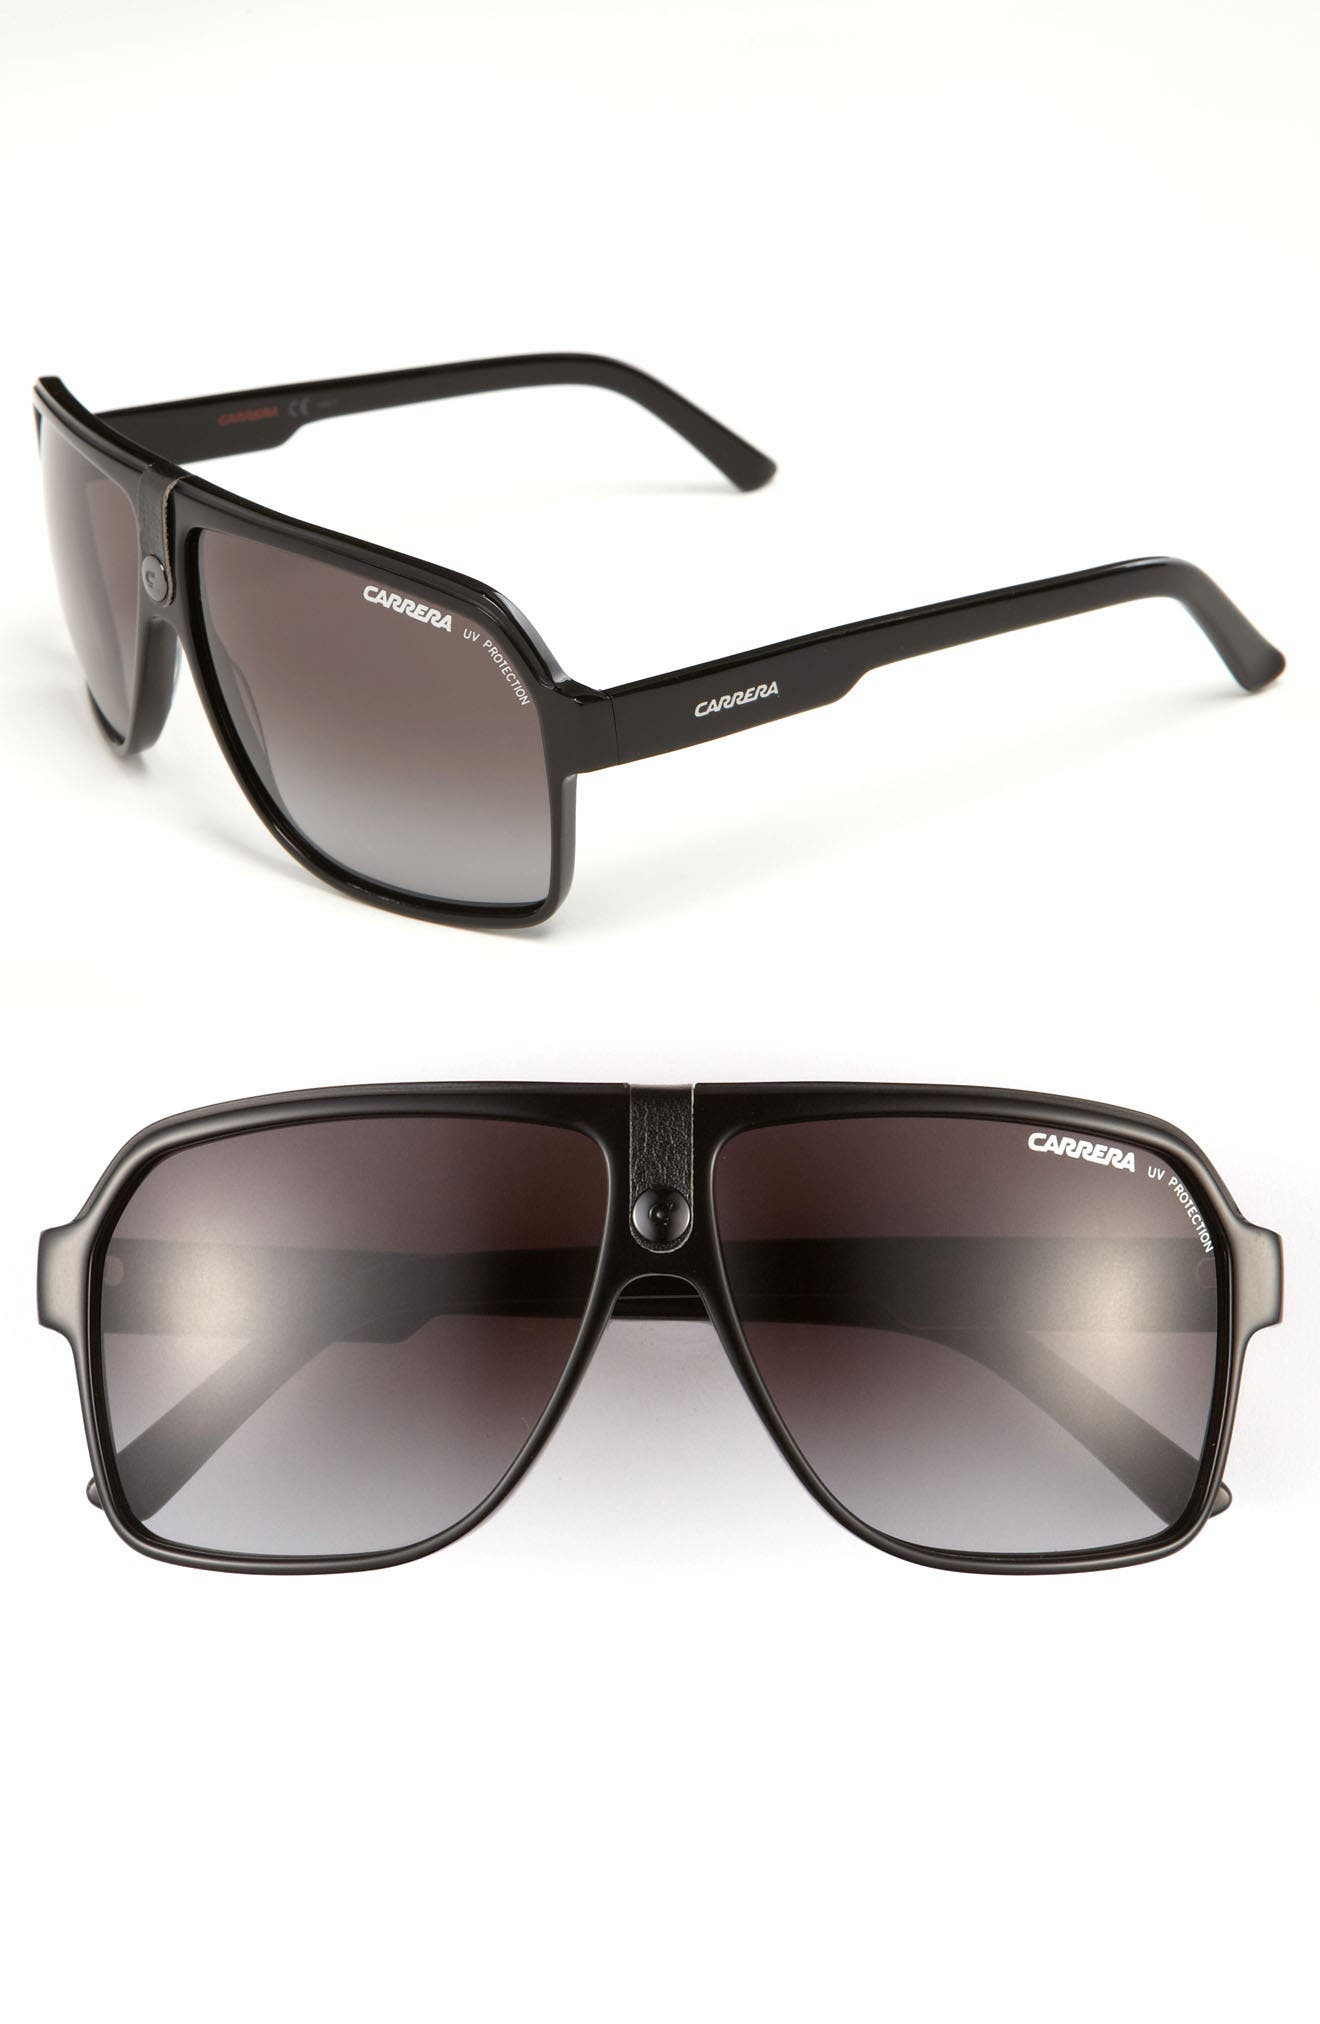 Carrera Eyewear 62Mm Aviator Sunglasses - Black